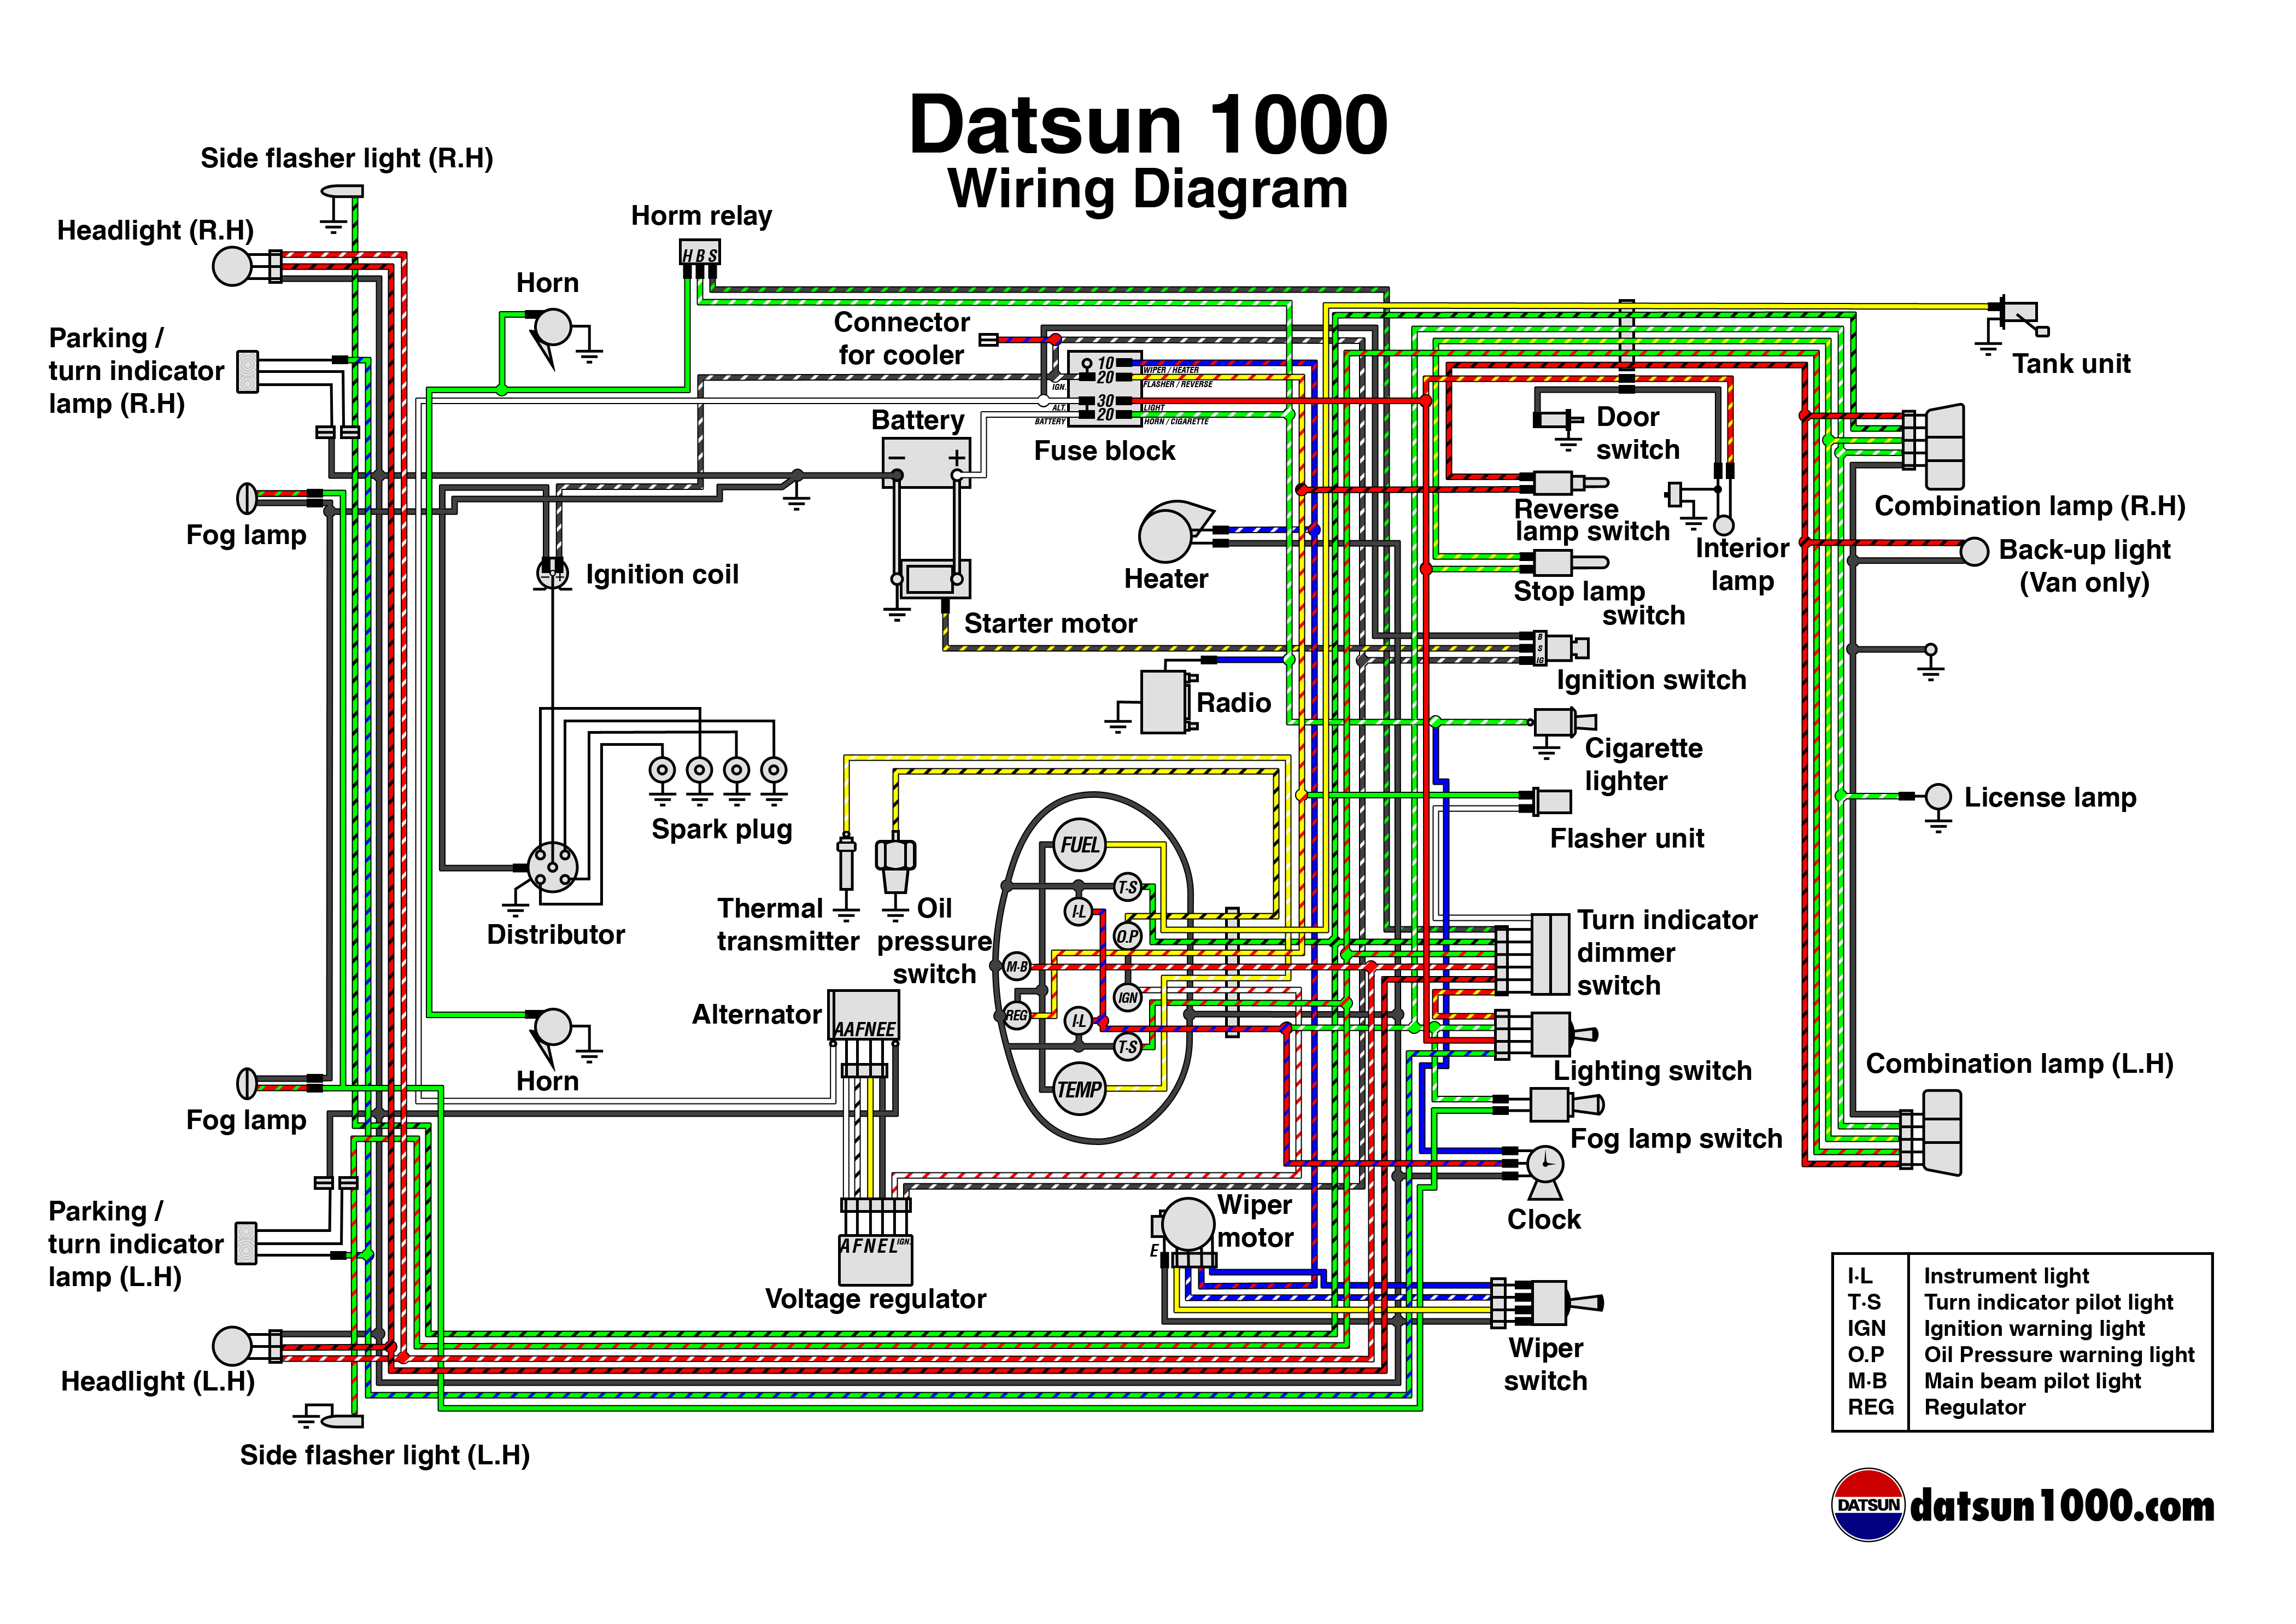 Datsun 620 Wiring Diagram Page 4 And Schematics 73 240z Diagrams Rh Parsplus Co 1978